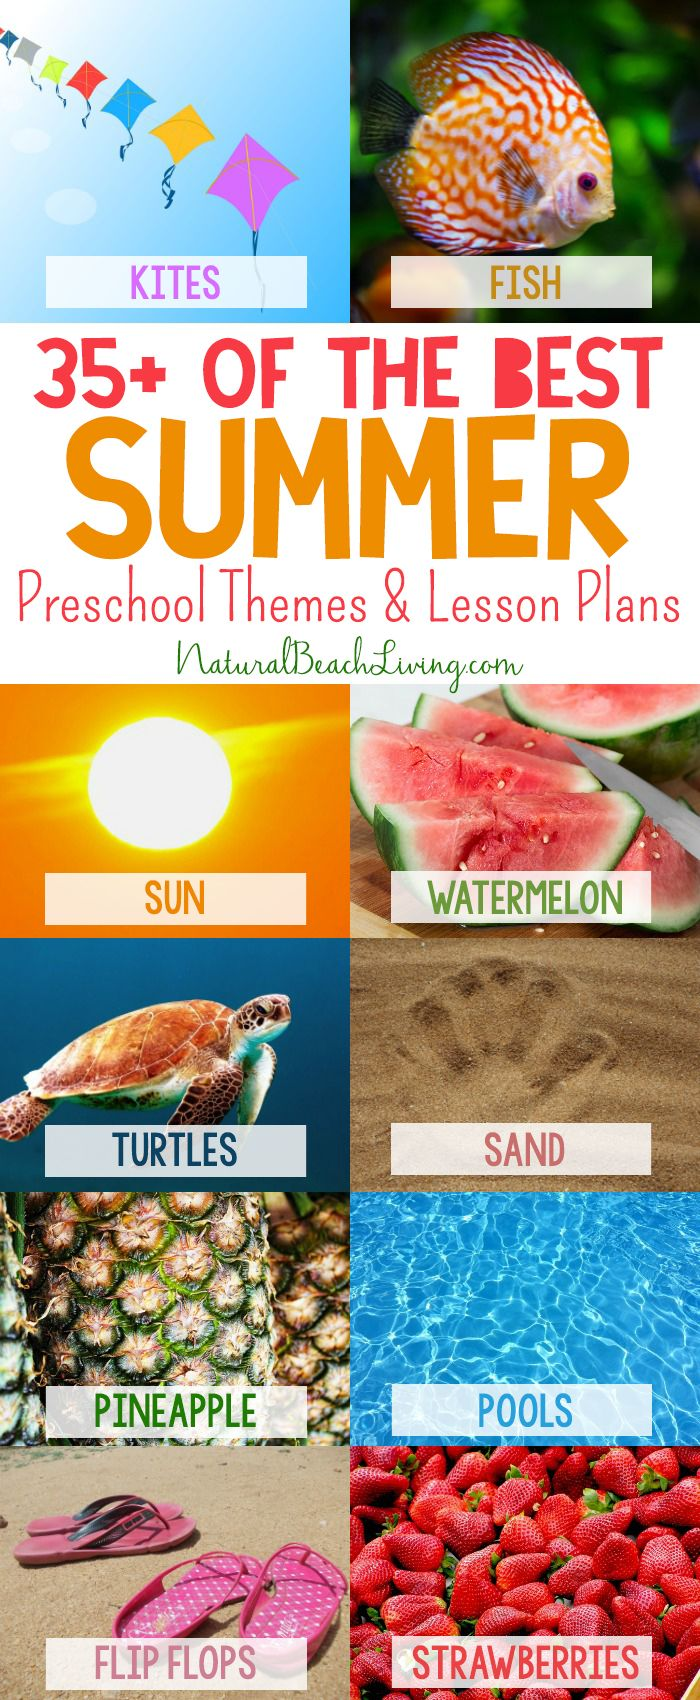 35 Summer Preschool Themes And Activities Summer Preschool